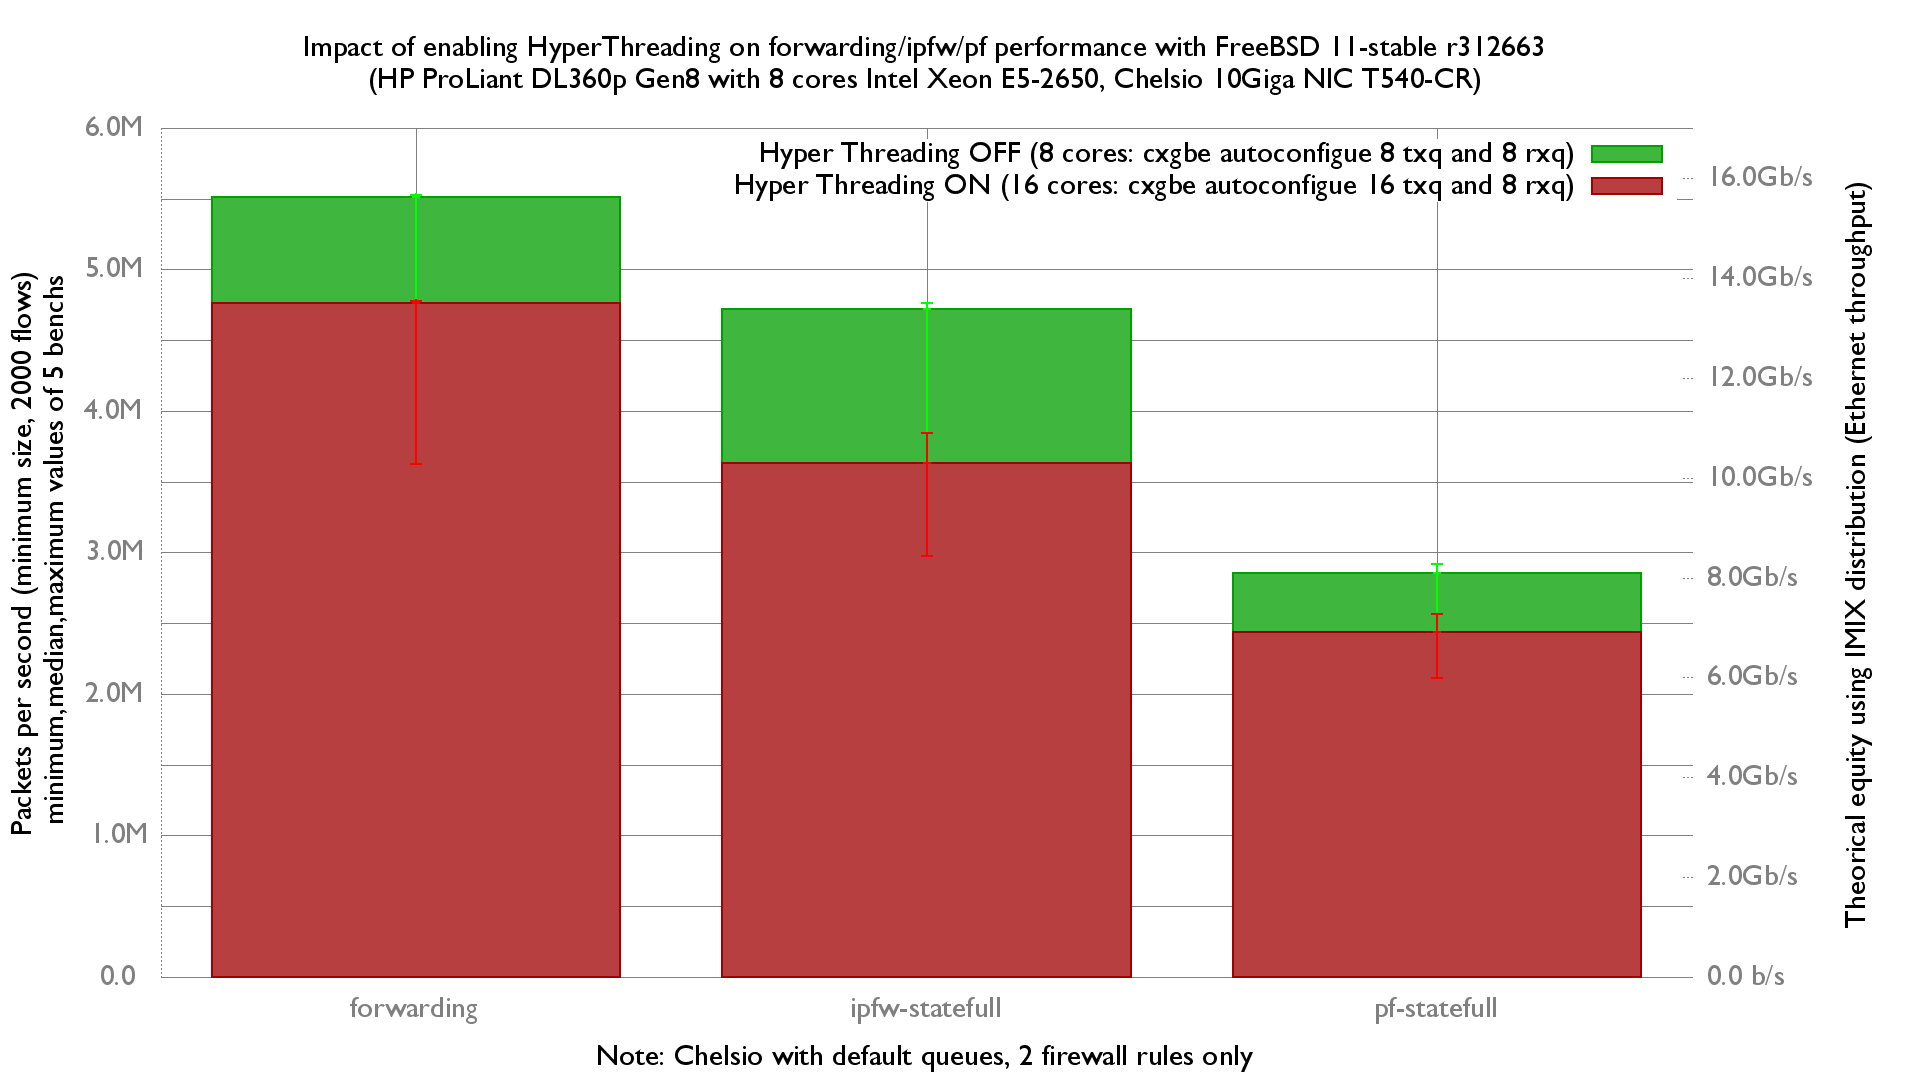 Impact of HyperThreading on forwarding performance on FreeBSD